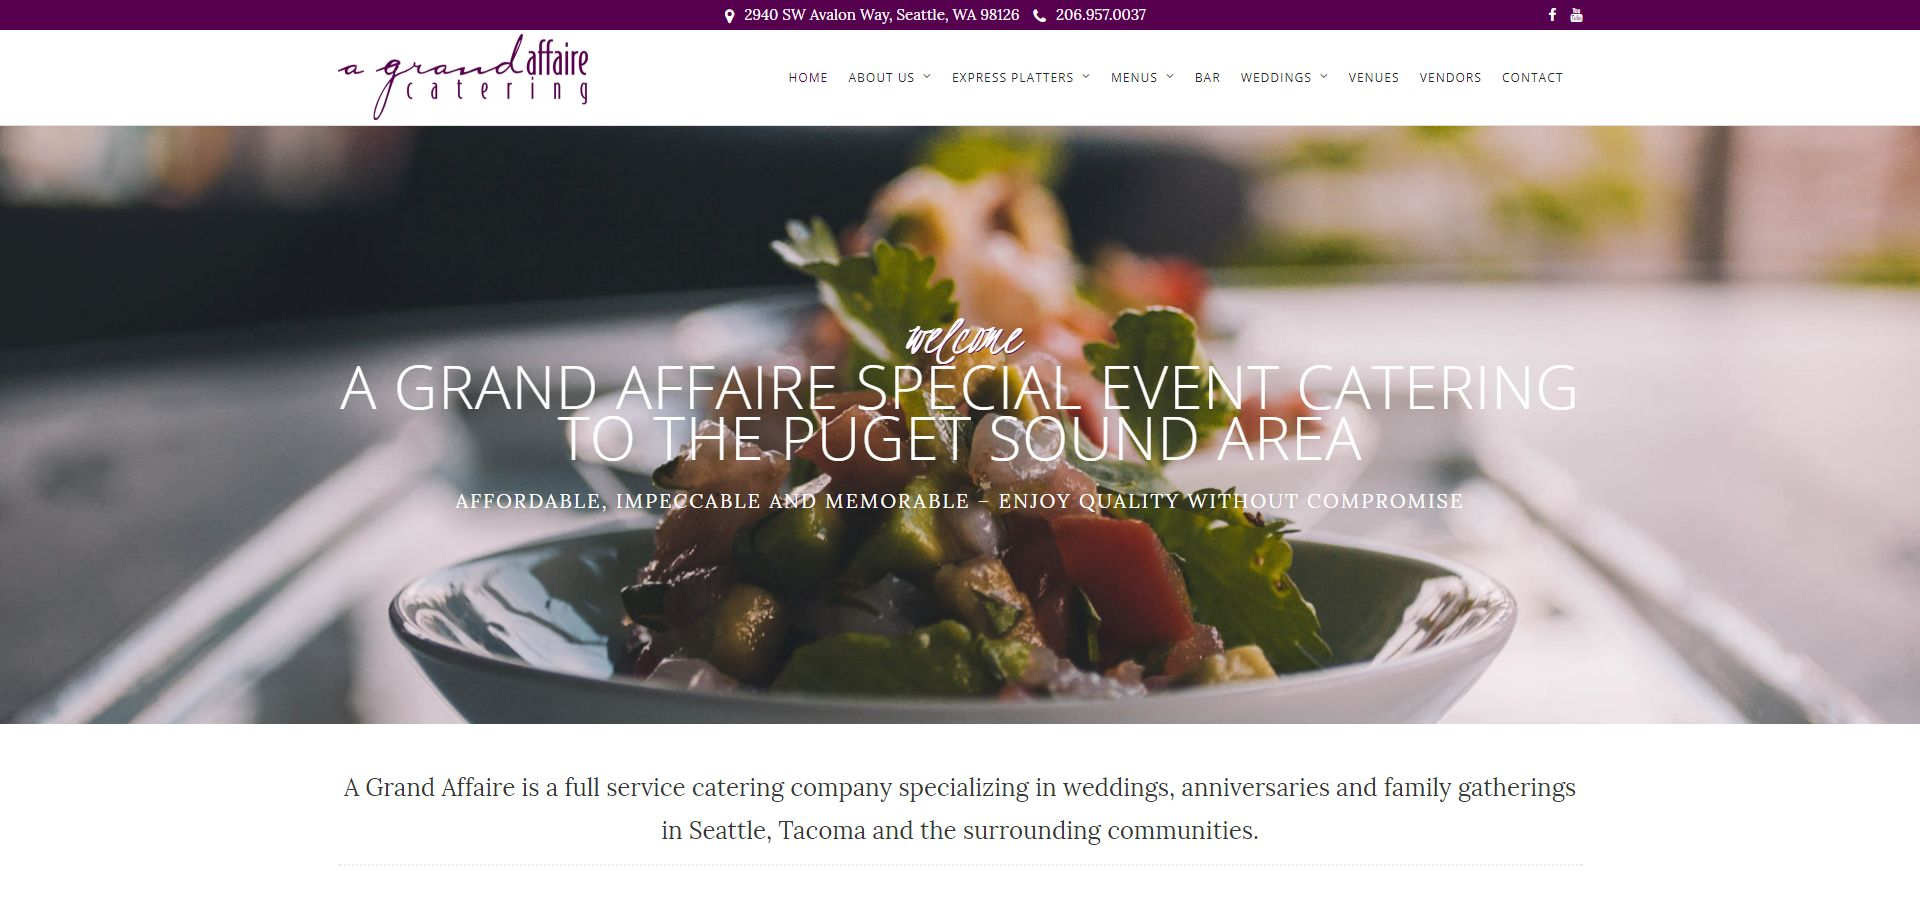 A Grand Affaire Catering website by Webcami